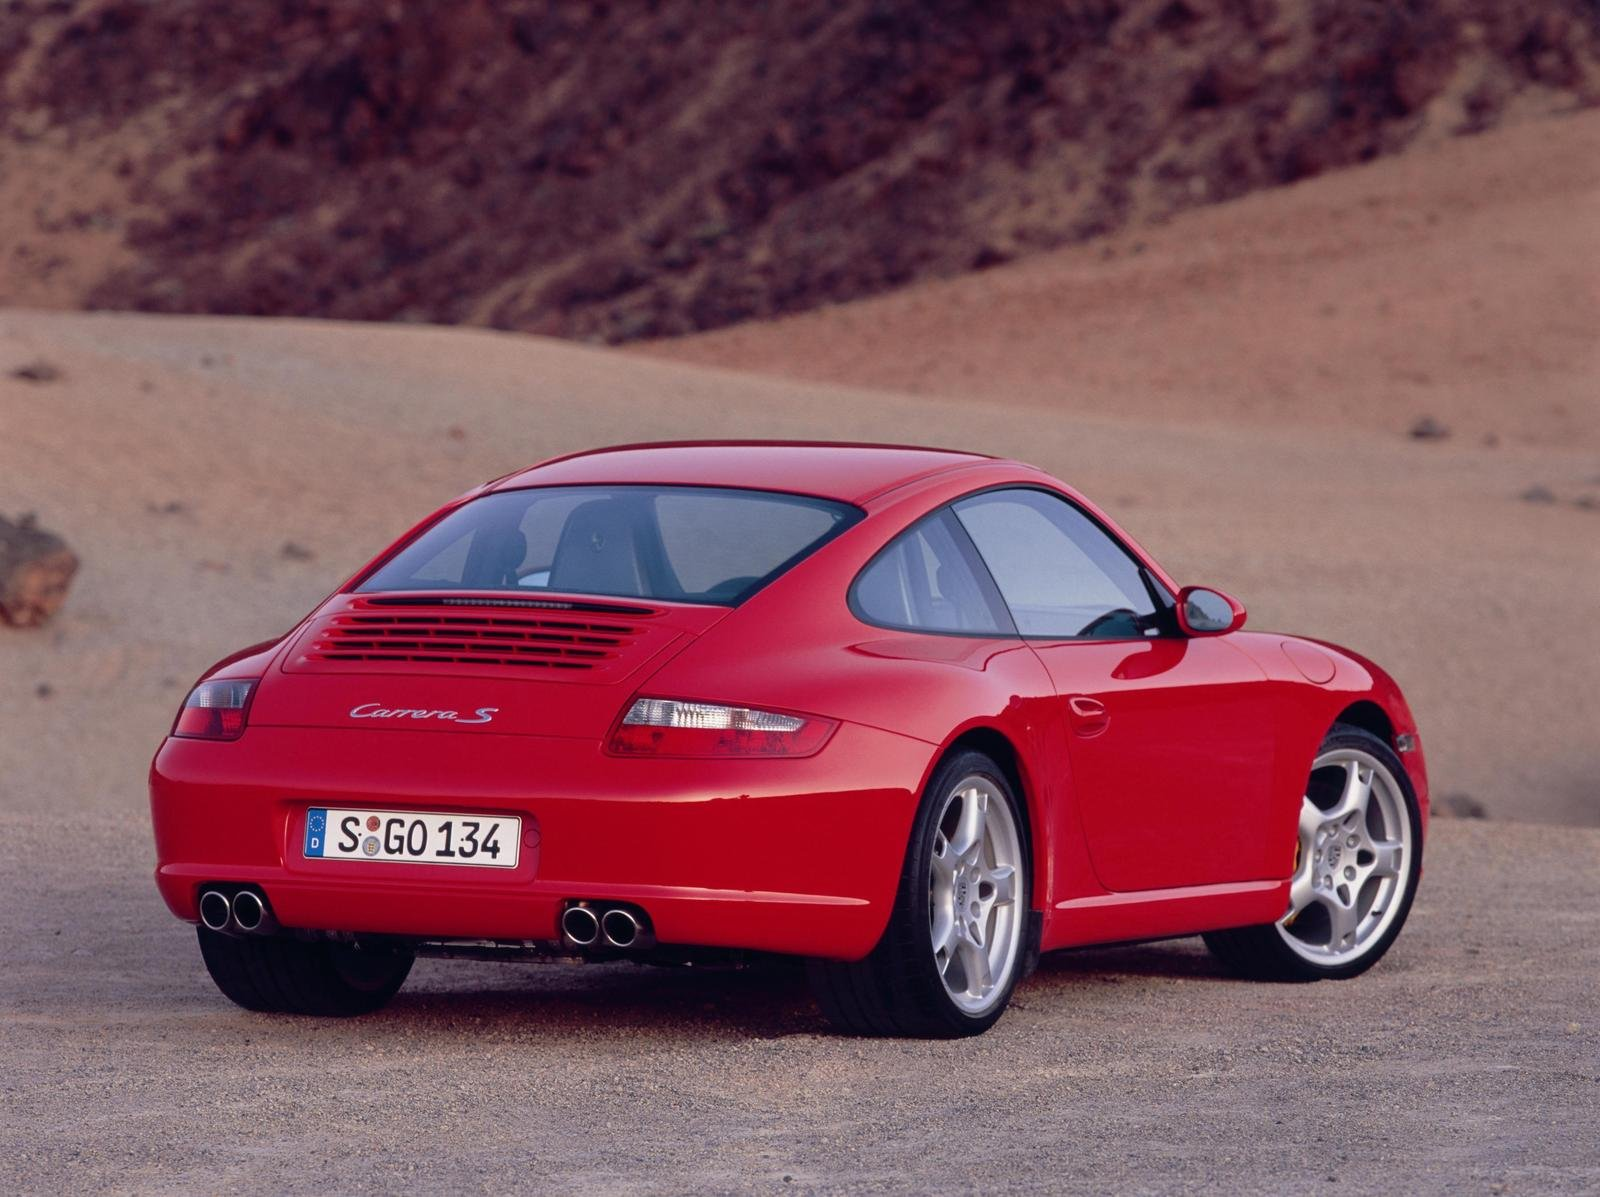 2005 porsche 911 carrera s 997 picture 41770 car. Black Bedroom Furniture Sets. Home Design Ideas